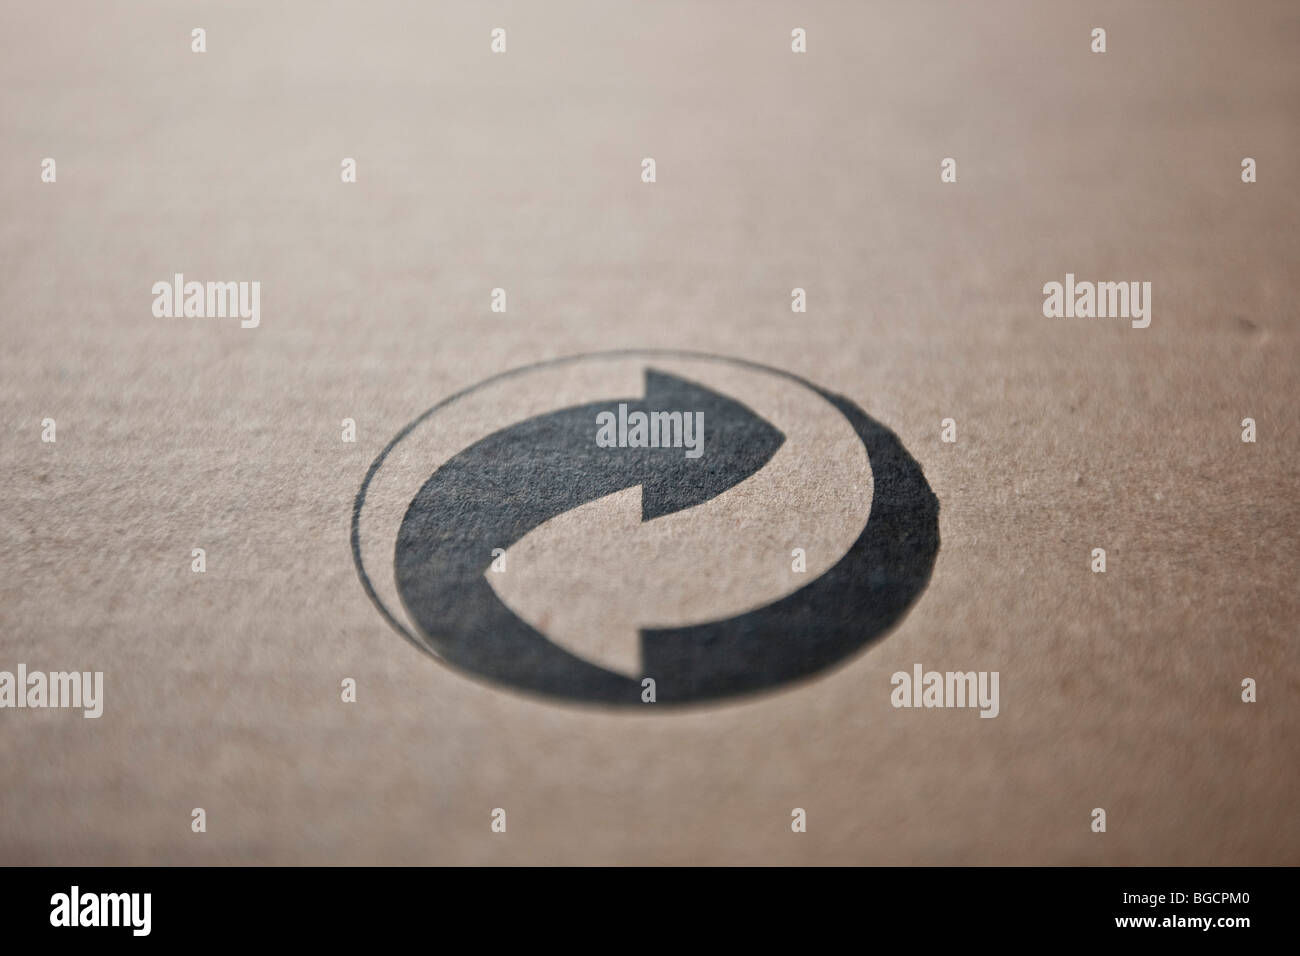 The Green Dot (Der Grüne Punkt) recycling symbol on a piece of cardboard, December 2009. - Stock Image